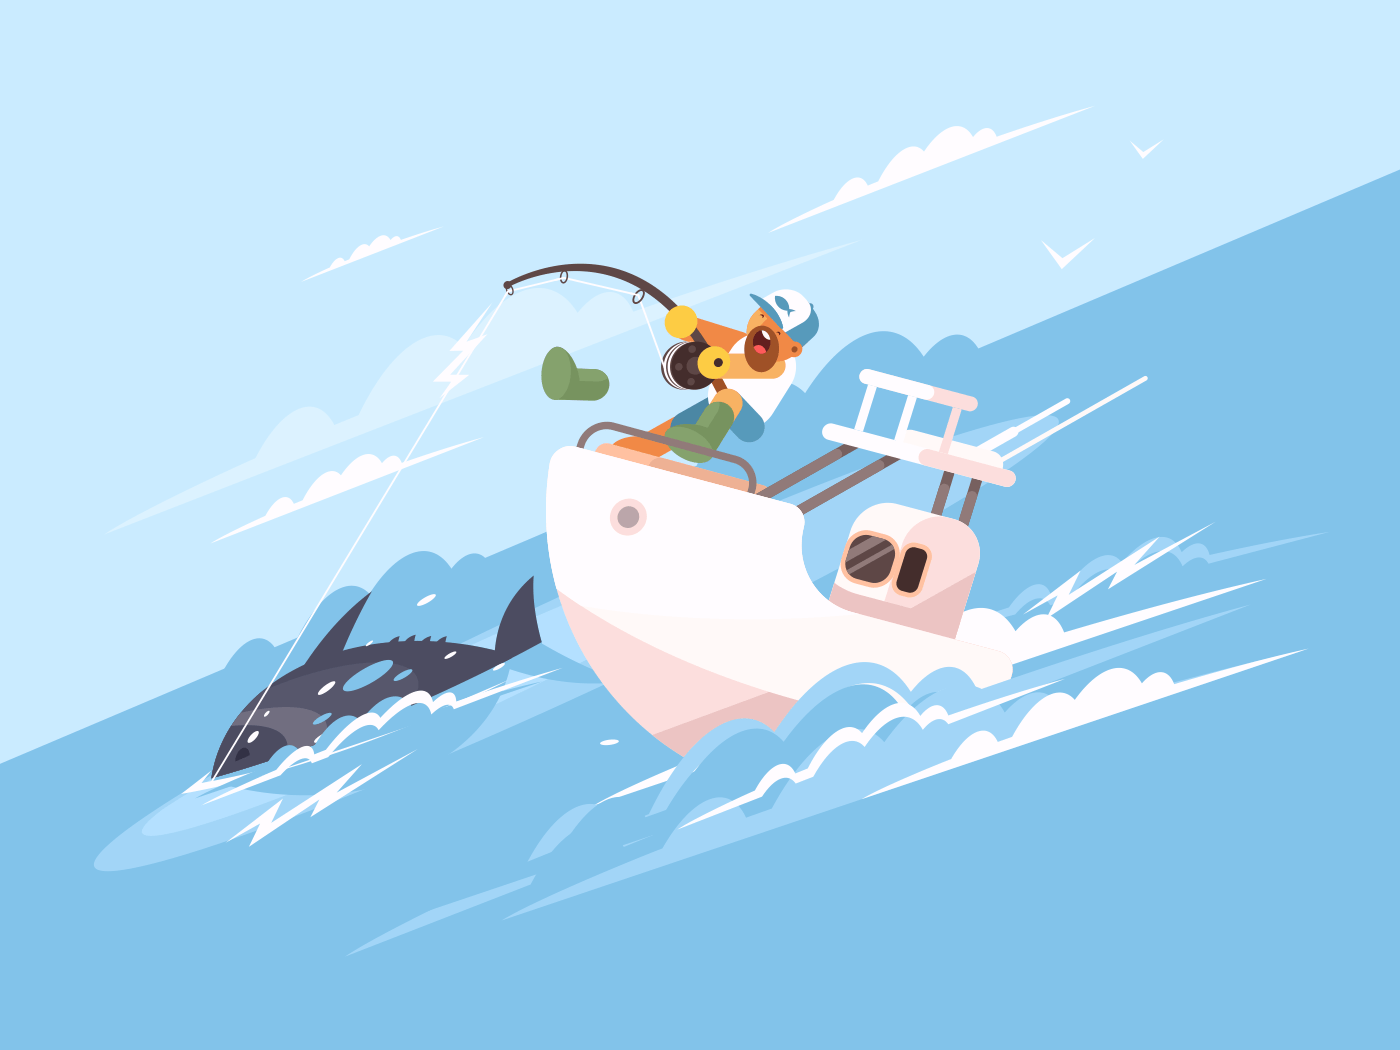 Fisherman catches tuna from yacht illustration